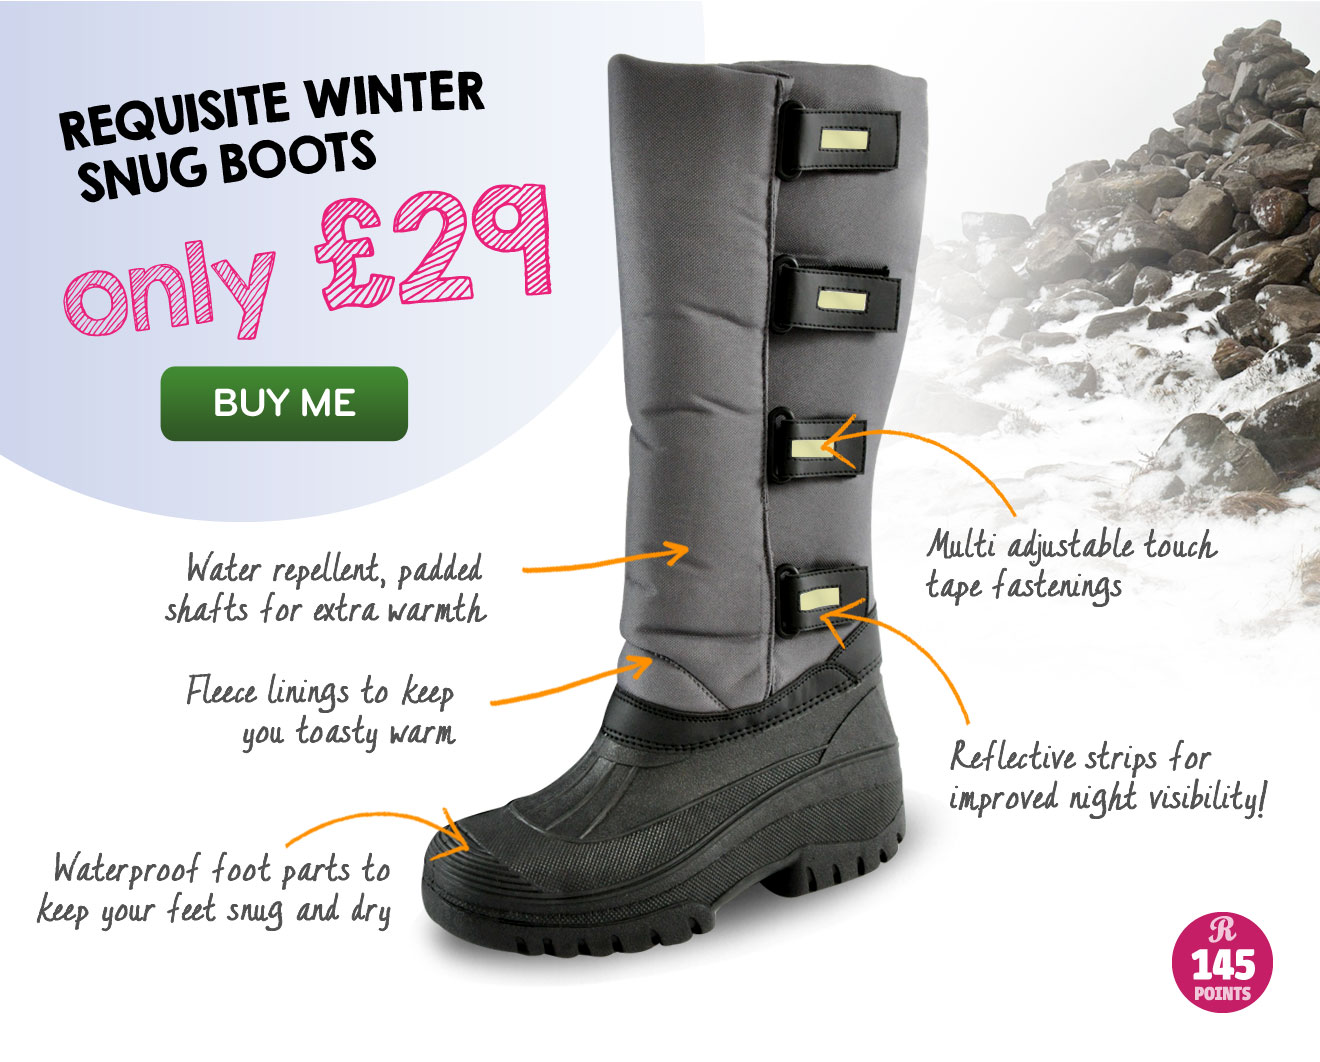 Requisite Winter Snug Boots only £29 (Earn 145 Rider Reward points worth £1.45)